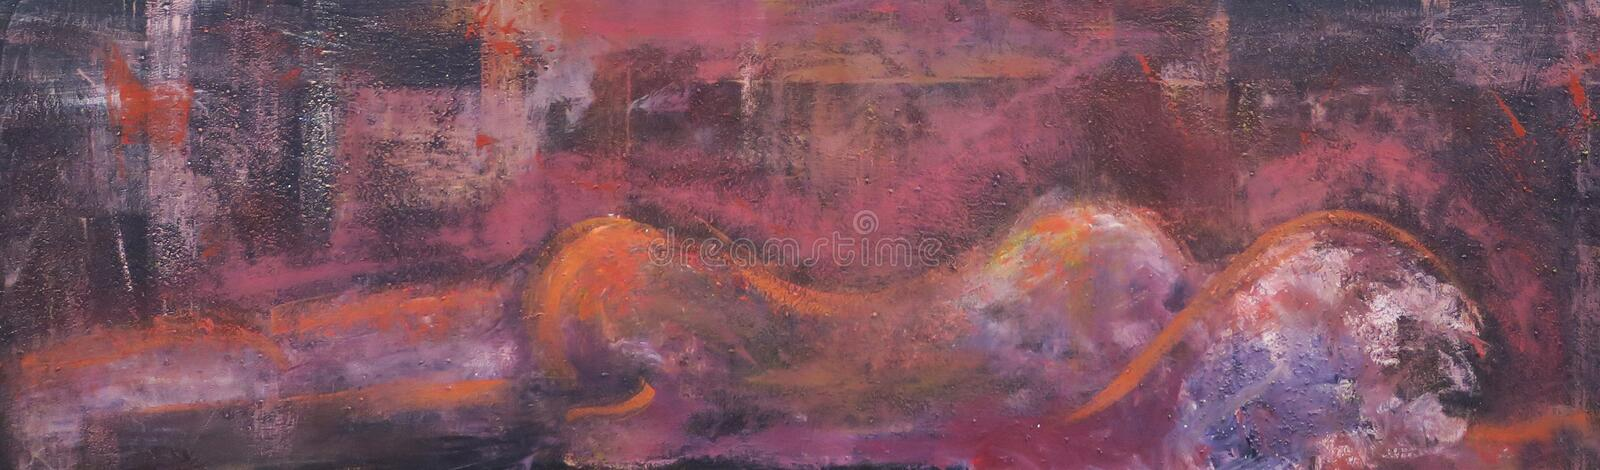 Abstract painting lying woman from behind royalty free stock photography